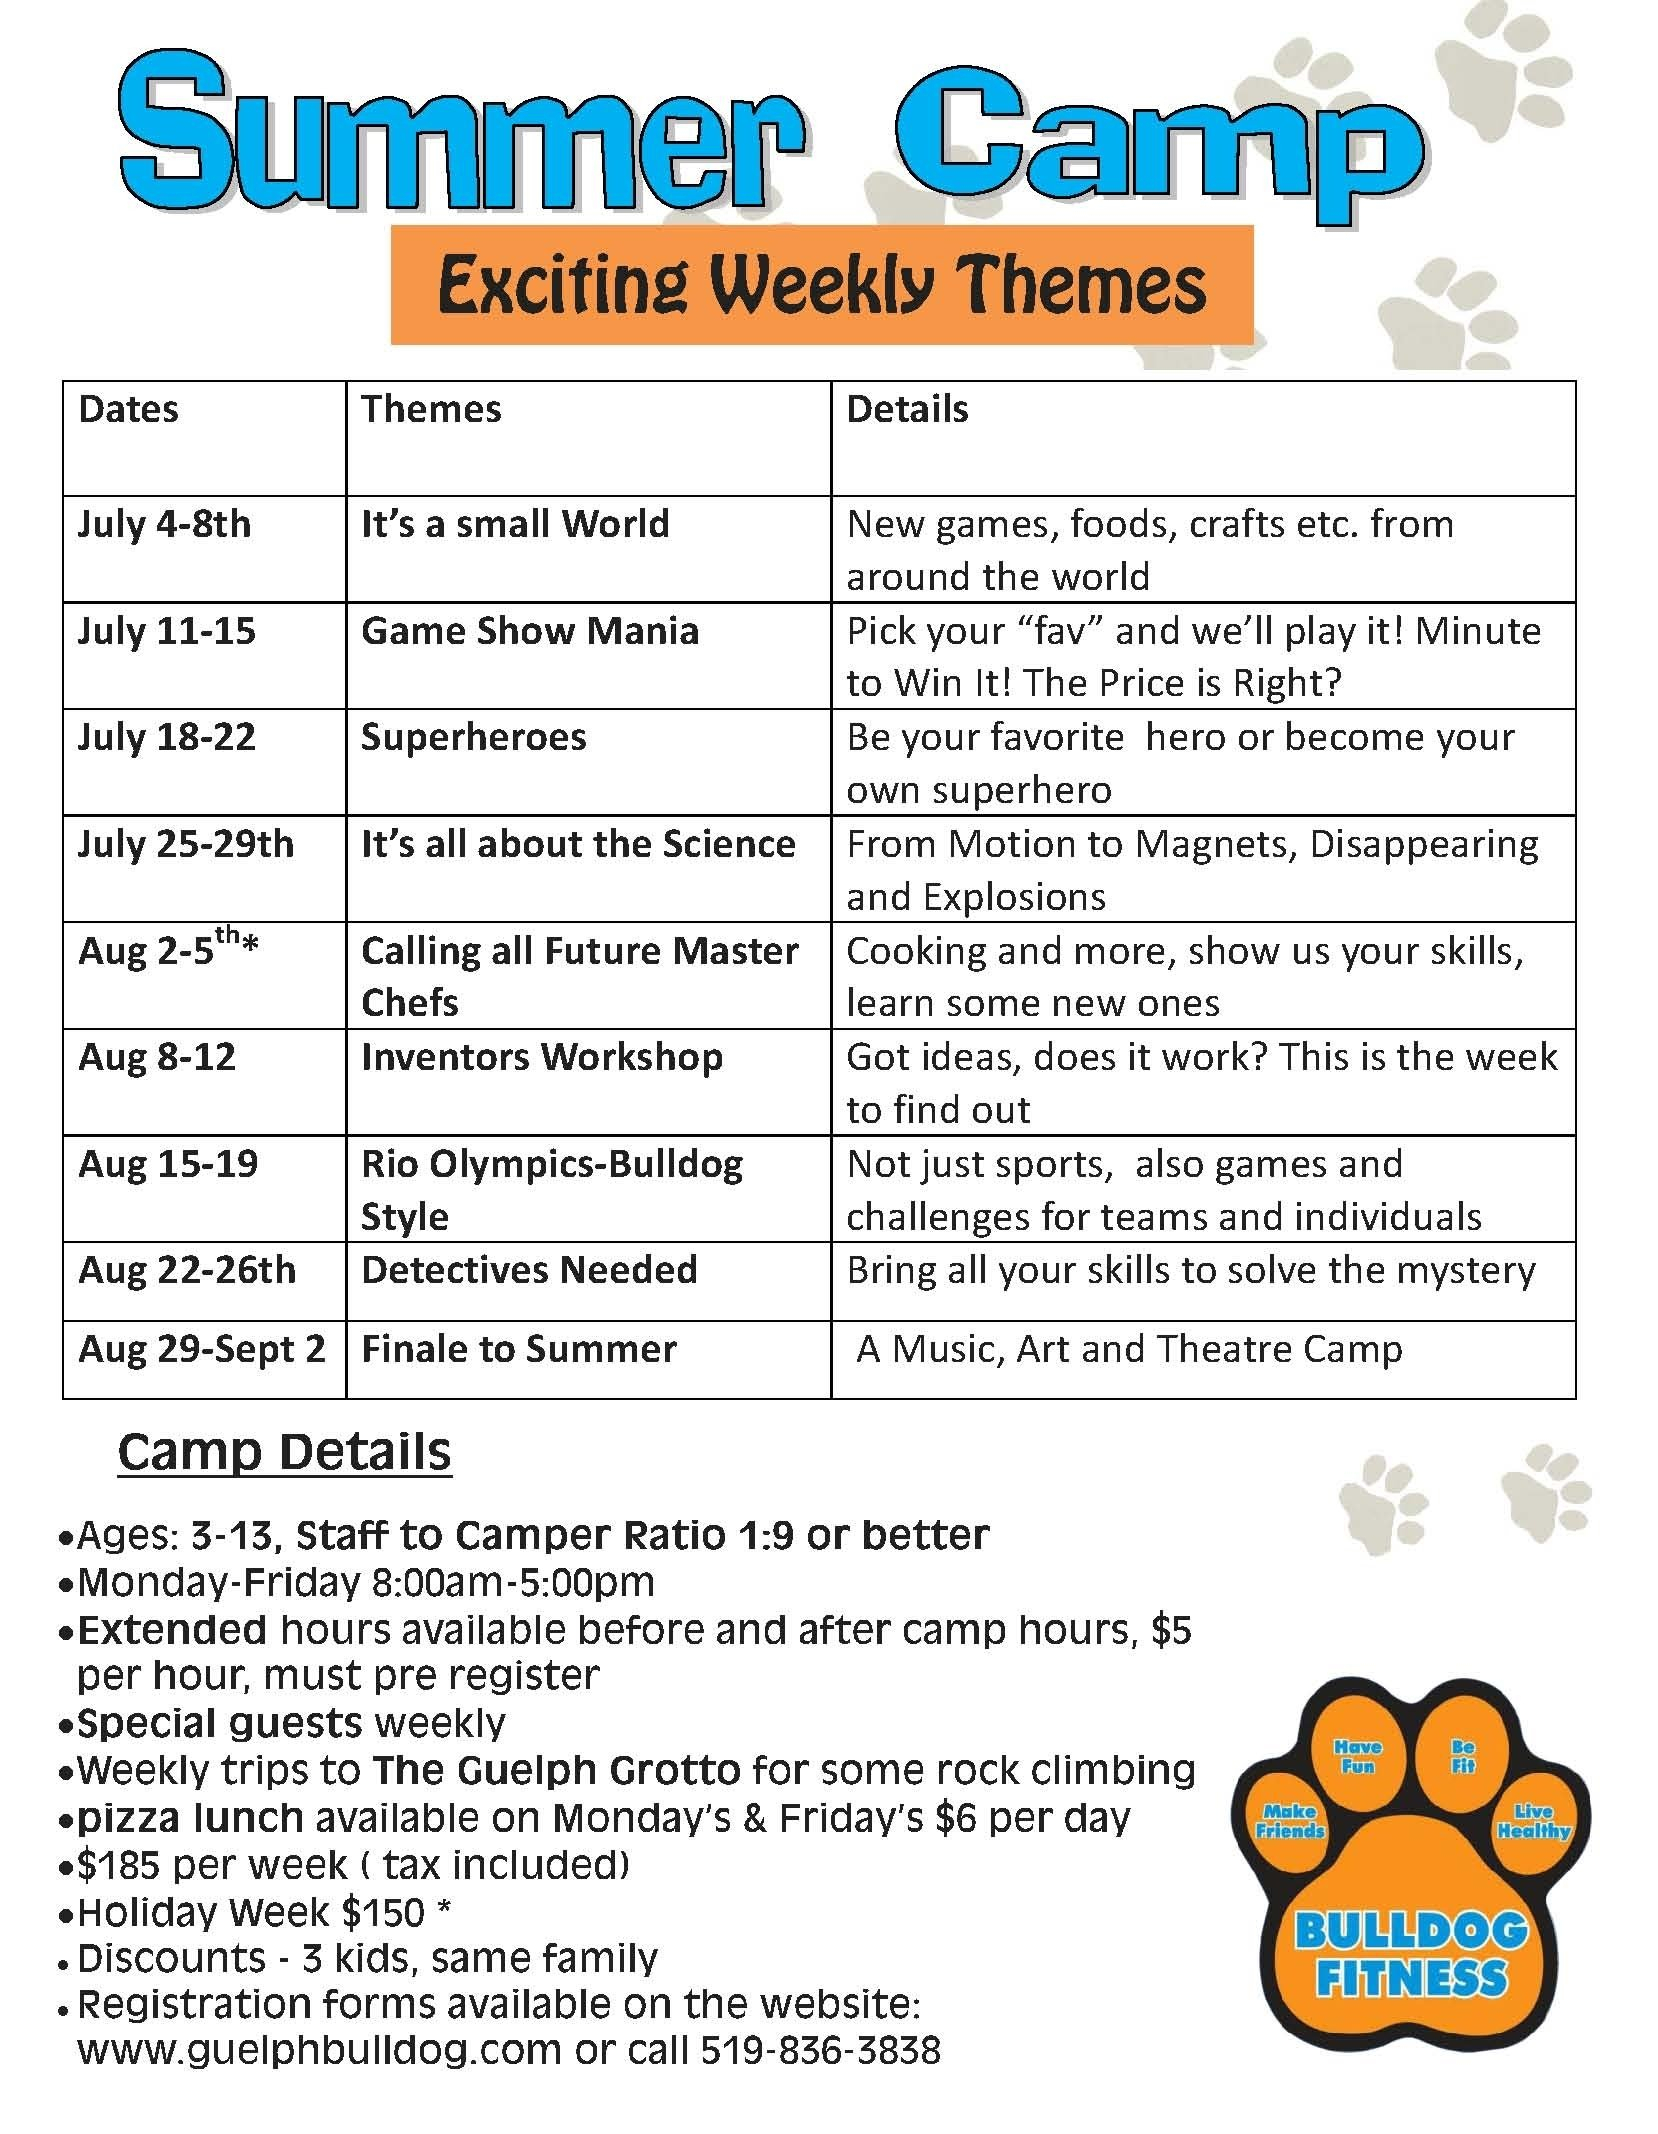 10 Most Popular Ideas For Summer Camp Themes summer camp themes list www topsimages